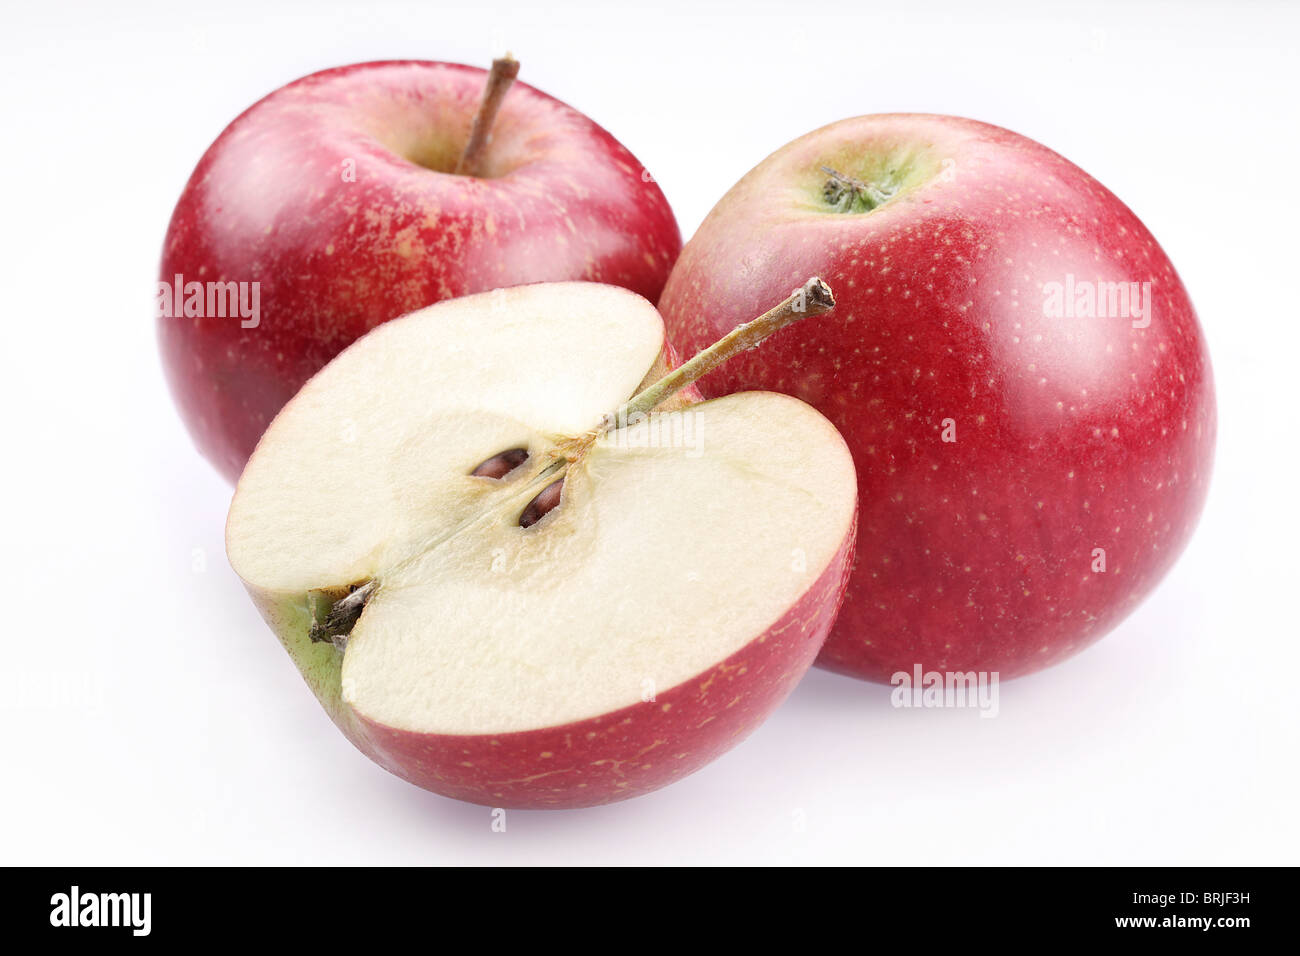 Red apple and a half of apple. Isolated on a white background. - Stock Image